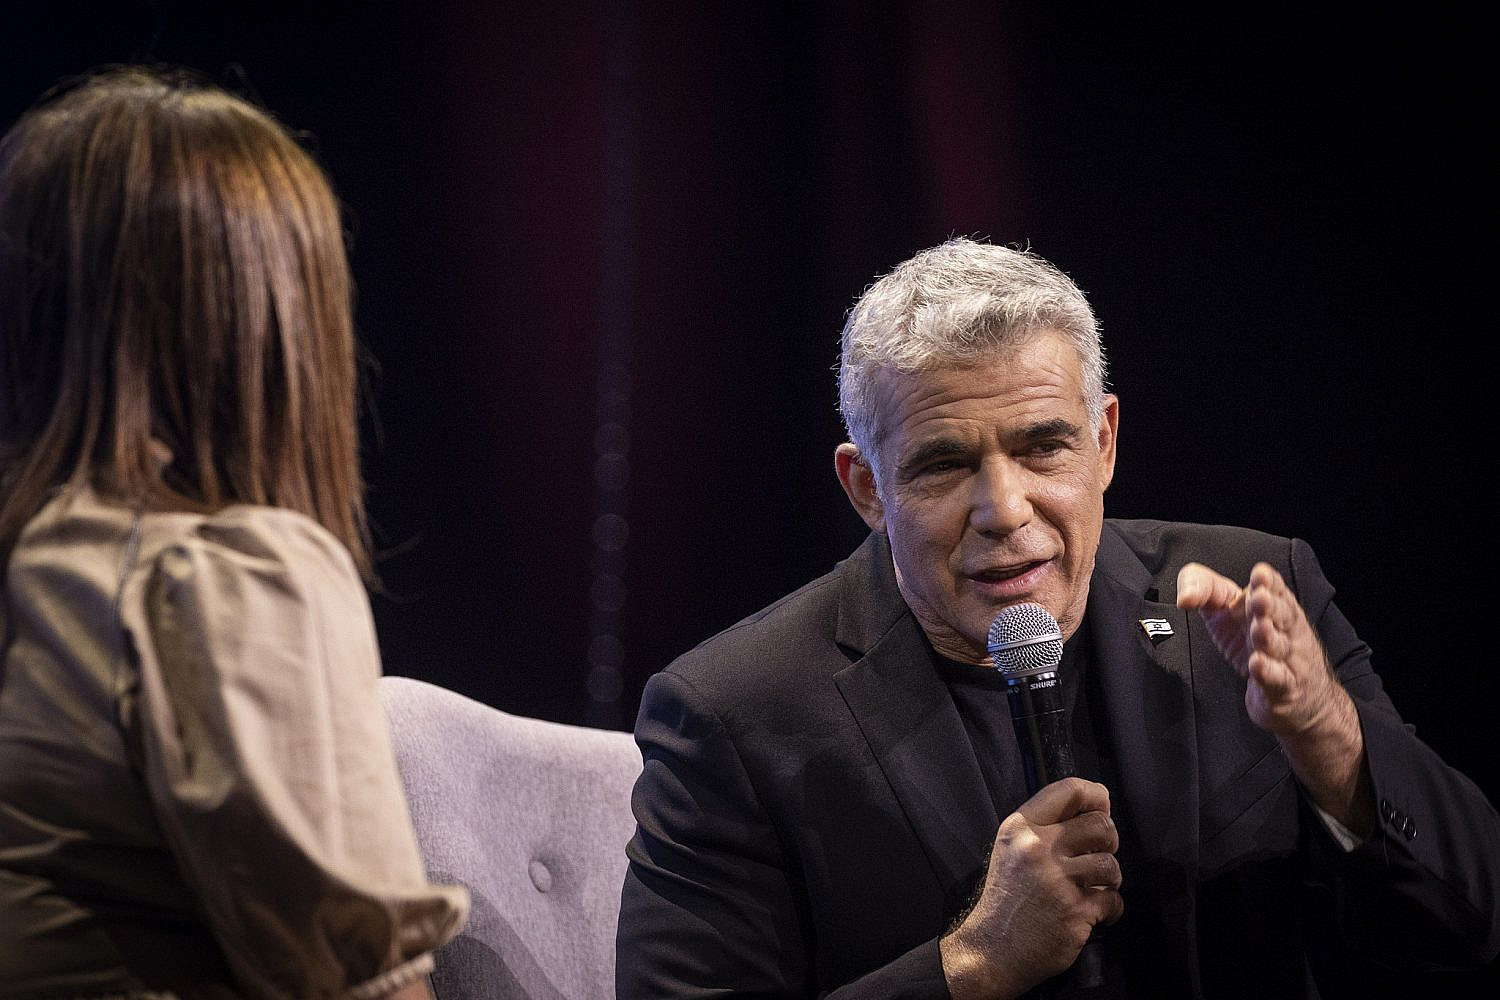 Yesh Atid leader Yair Lapid speaks with Channel 12 News anchor Rina Mazliah during the conference of the Israeli Television News Company in Tel Aviv, Sept. 5, 2019. (Hadas Parush/Flash90)